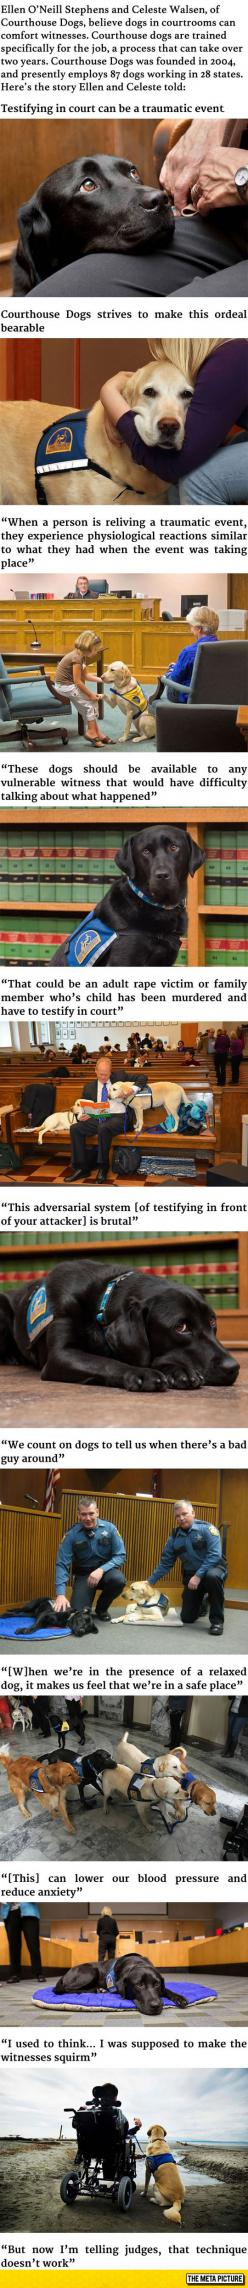 These Courthouse Dogs Are Trained to Comfort Witnesses in Courtrooms